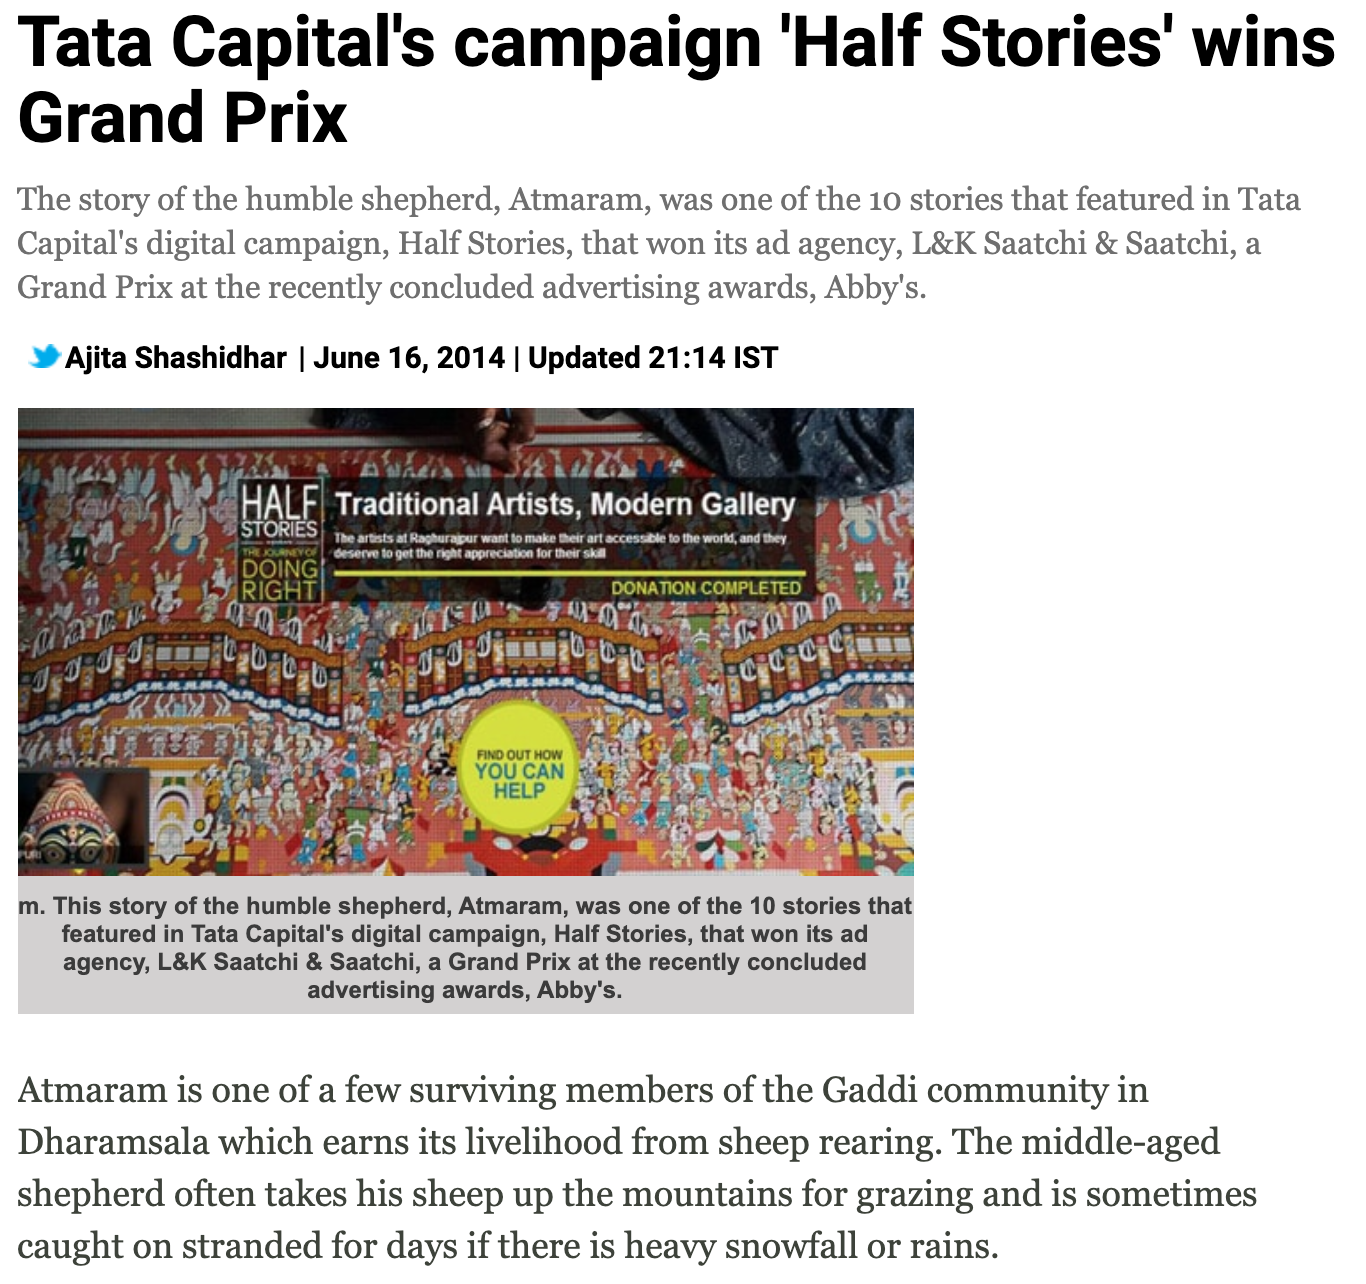 TATA CAPITAL CASESTUDY WINS GRANDPRIX